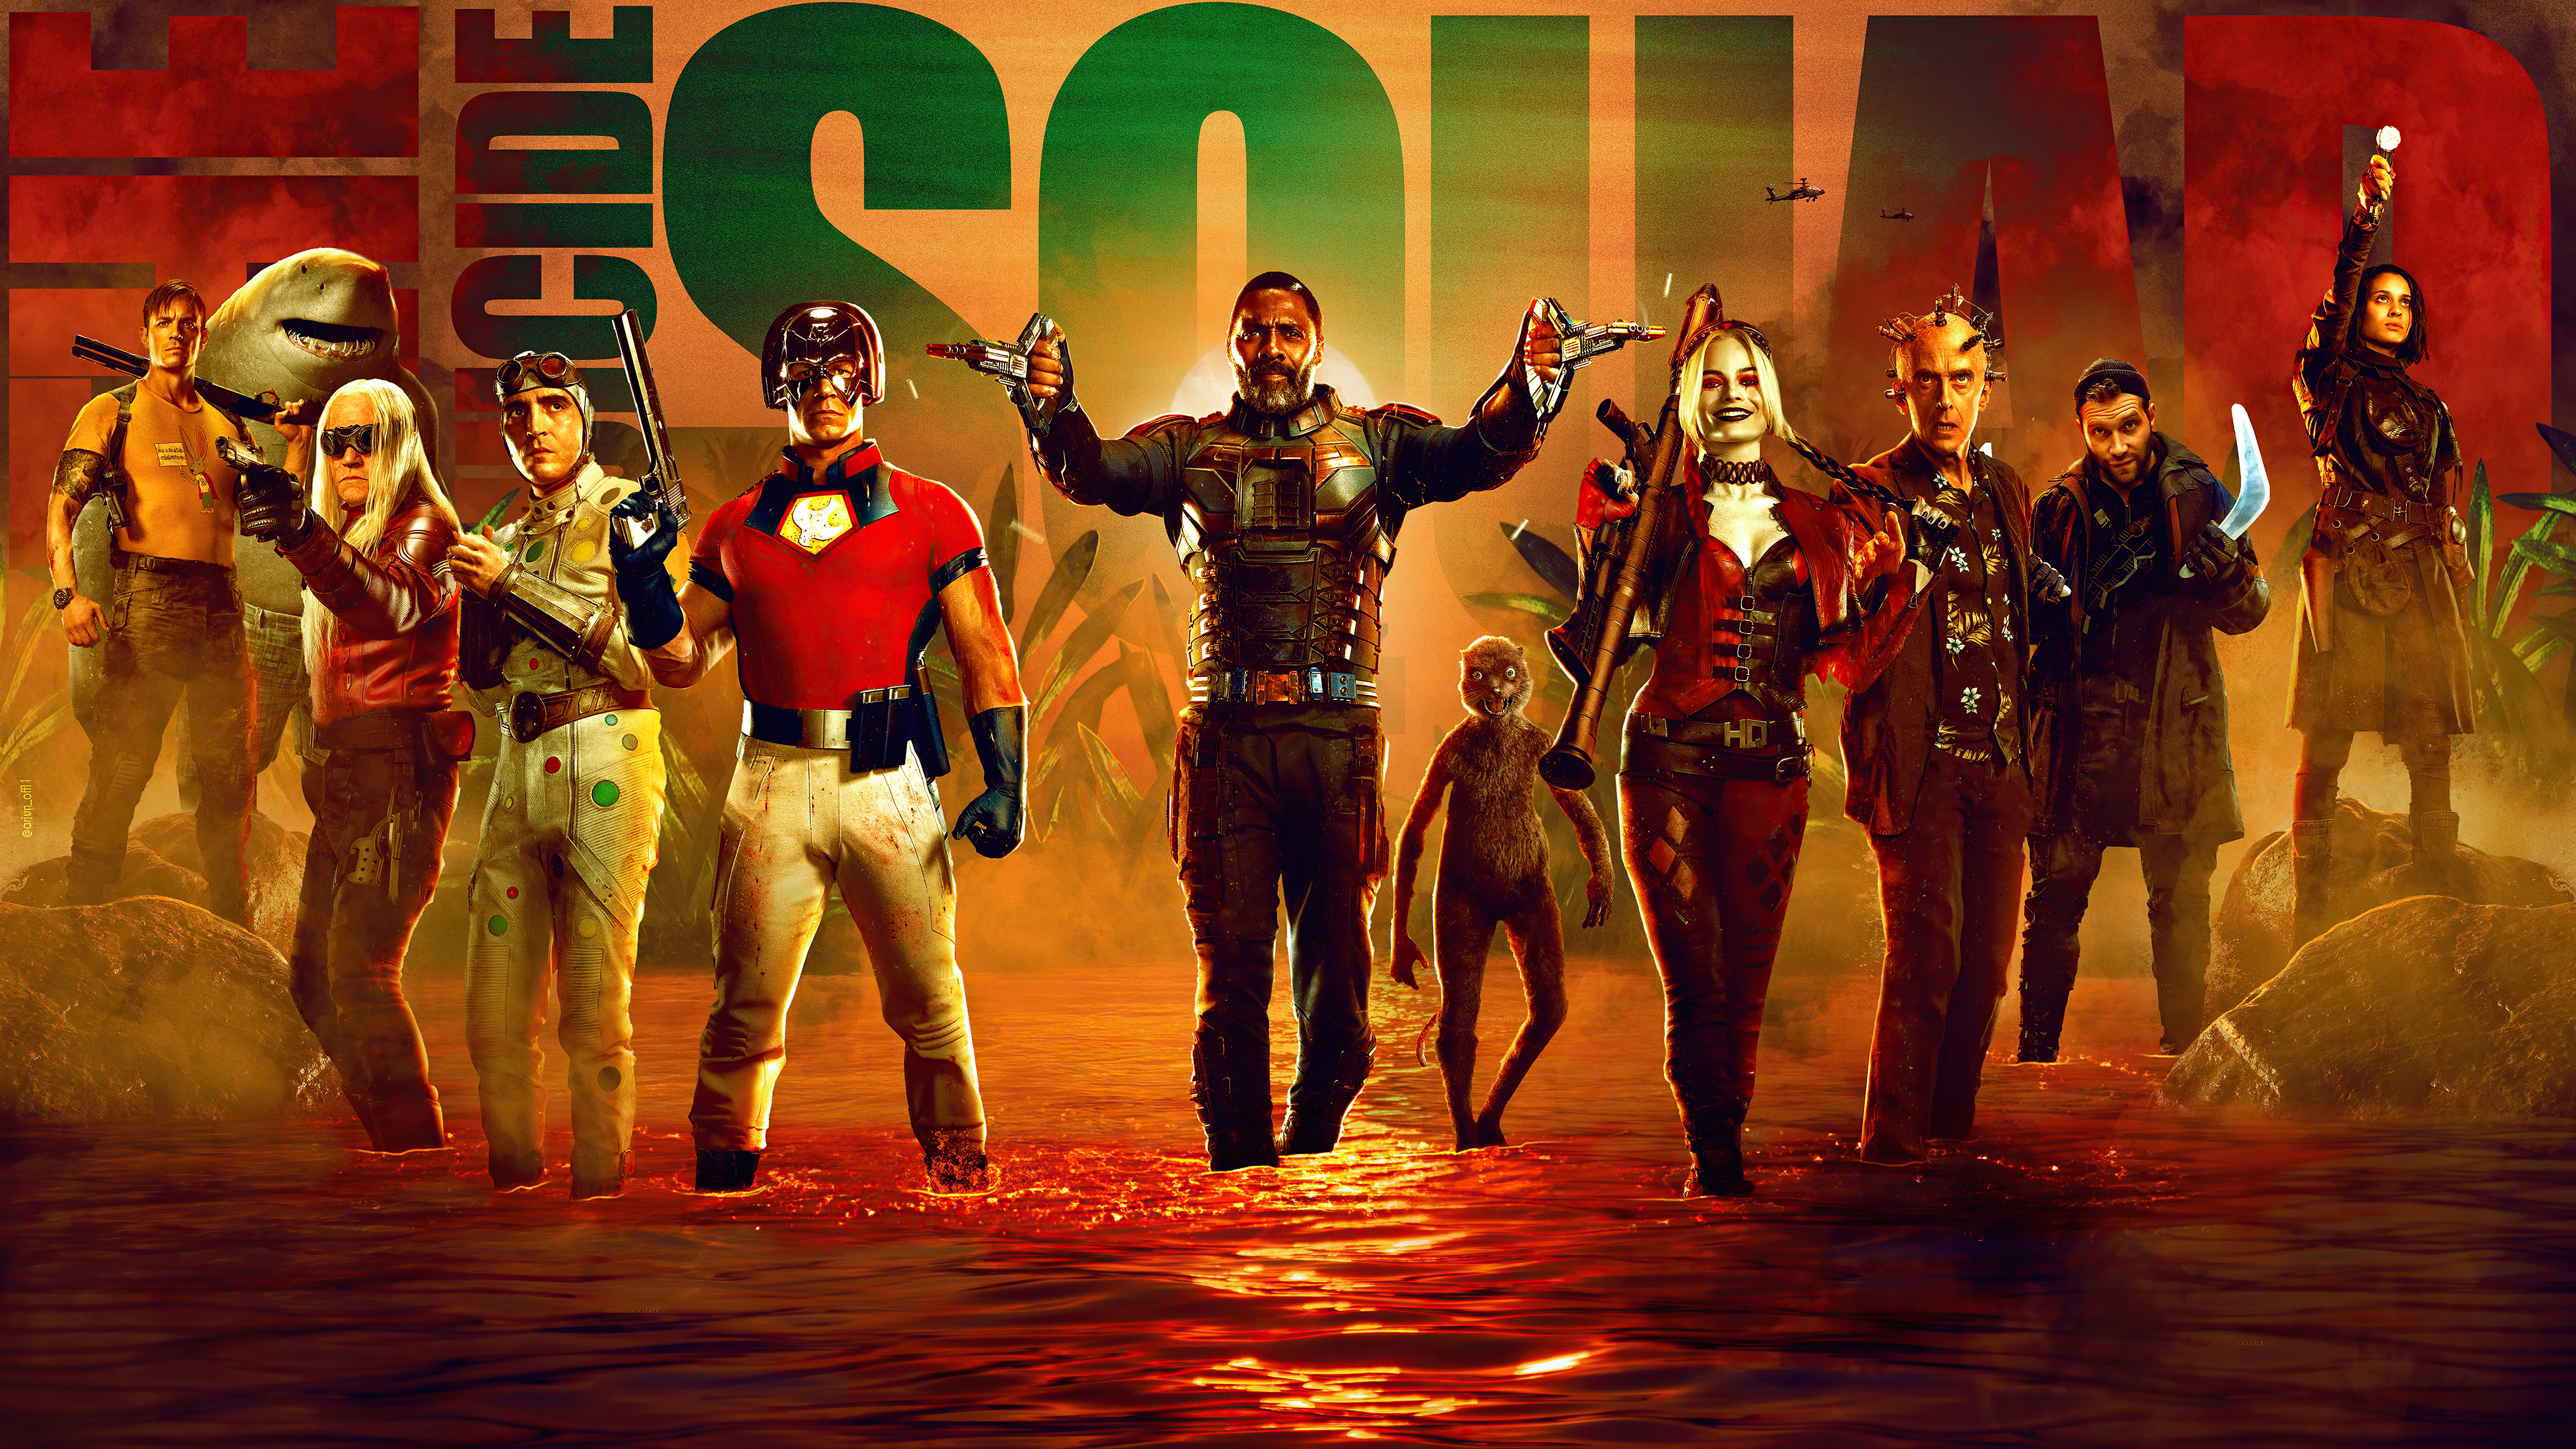 Wallpaper All characters from Suicide Squad